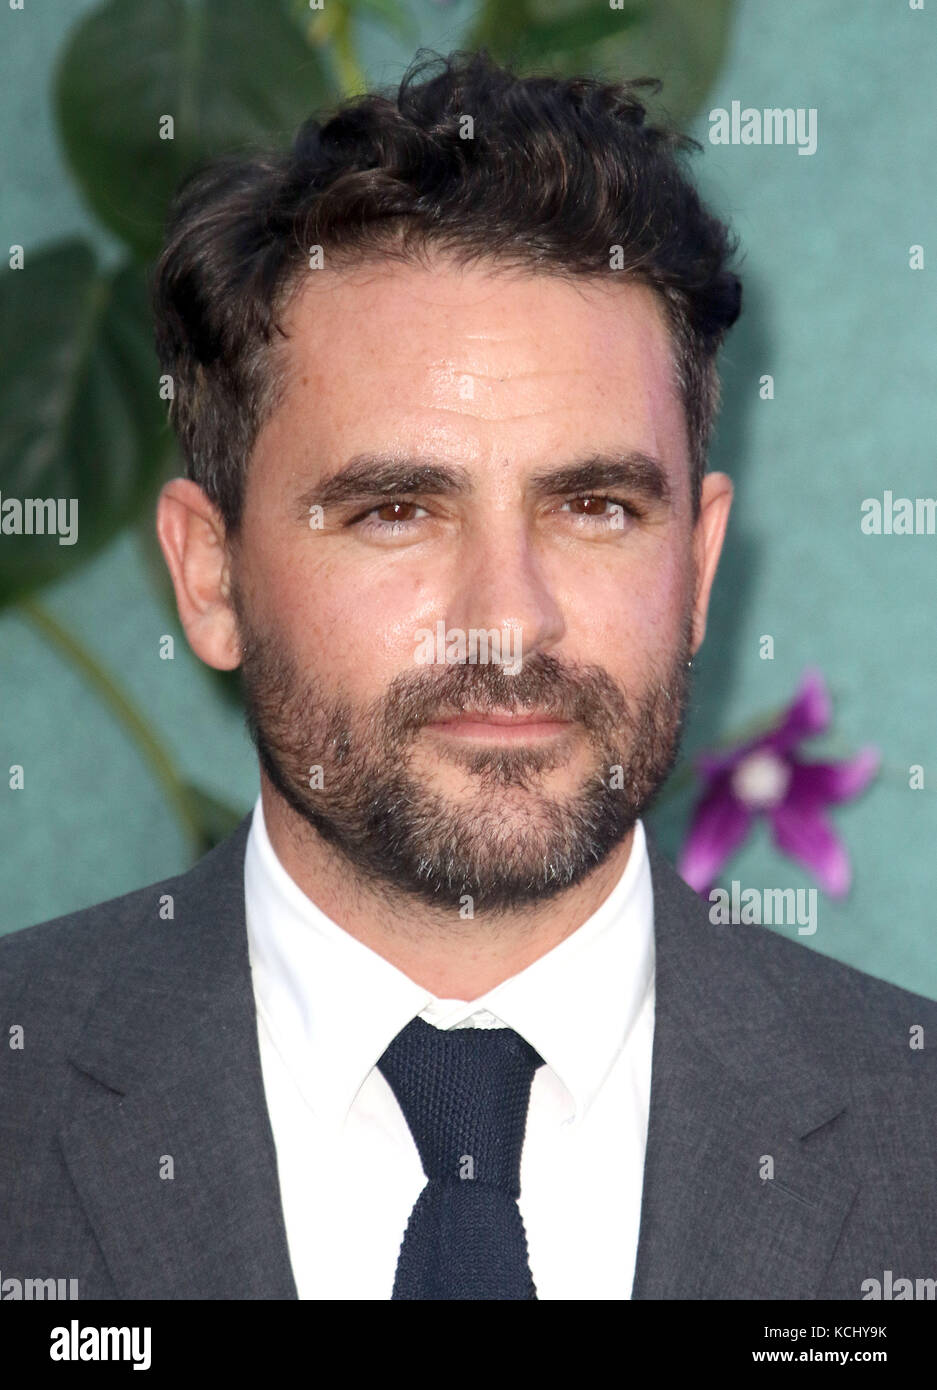 Sep 06, 2017 - Levison Wood attending 'Mother!' UK Premiere, Odeon Leicester Square in London, England, - Stock Image